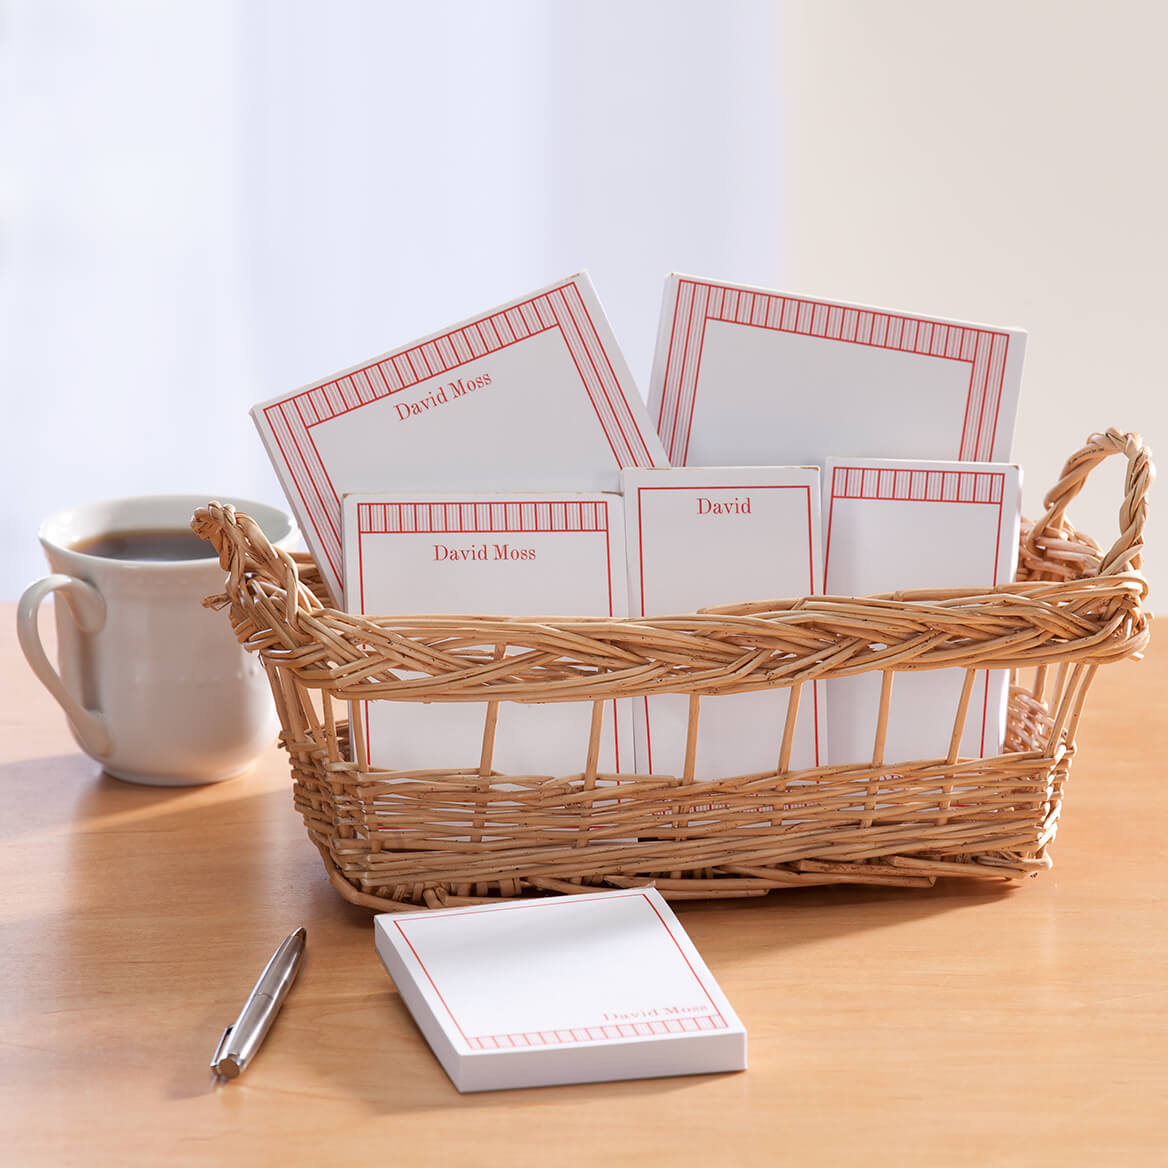 Personalized Vertical Stripes Basketful of Notepads-349464